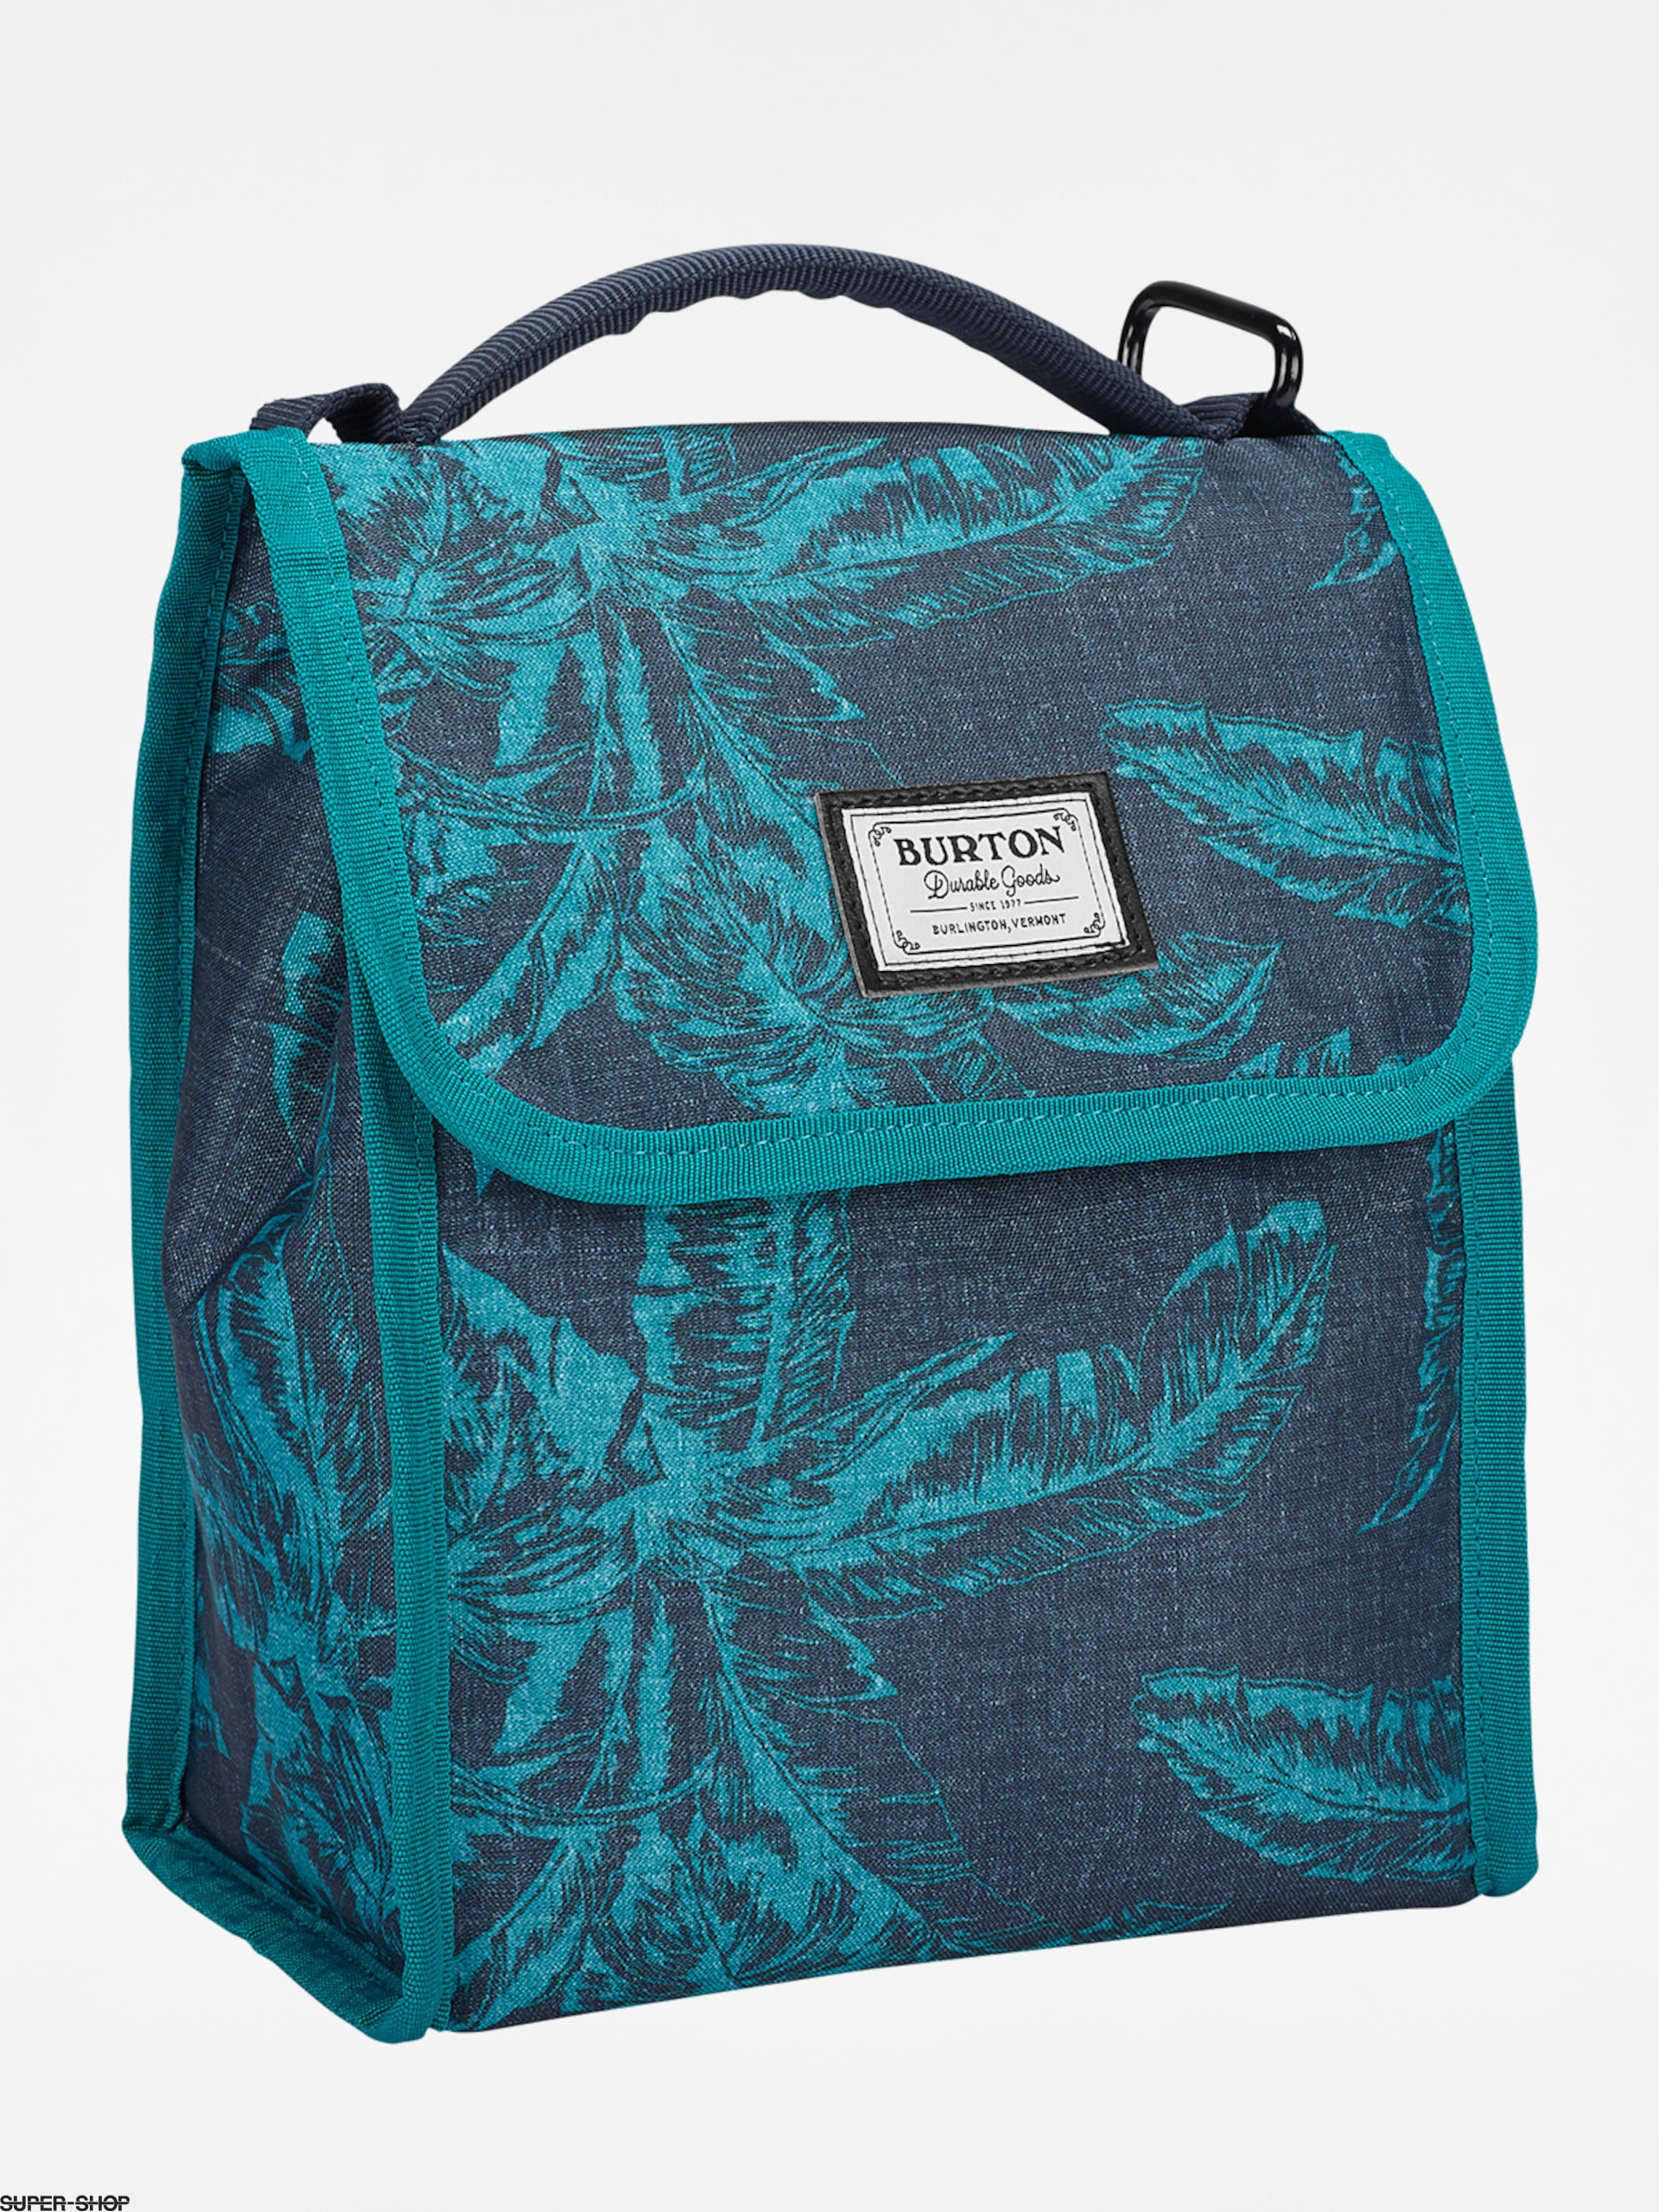 Burton Lunch Sack (tropical print)